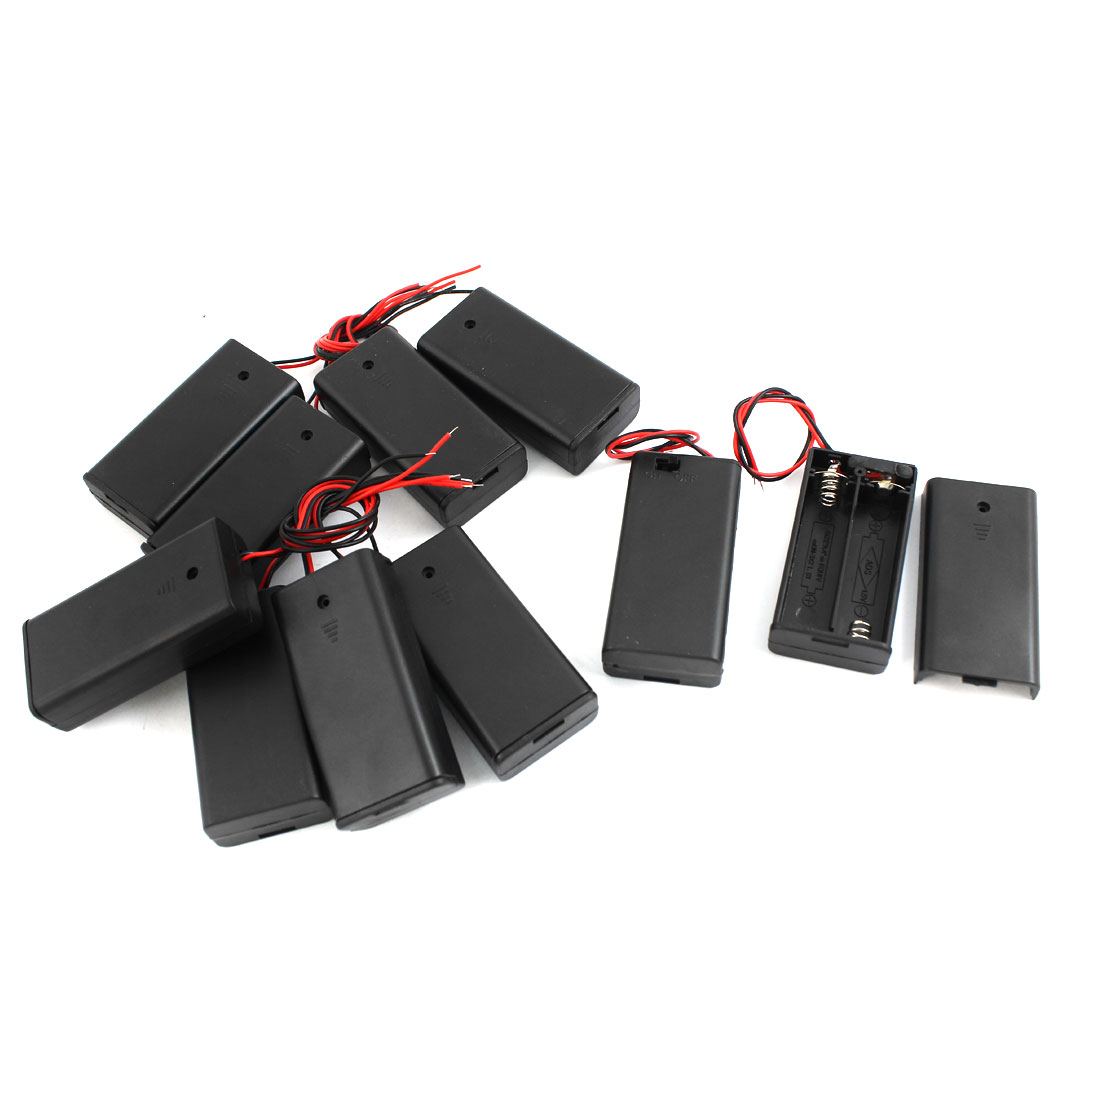 10pcs Black Flat Tip Battery Storage Case Holder for 2 x AA Batteries